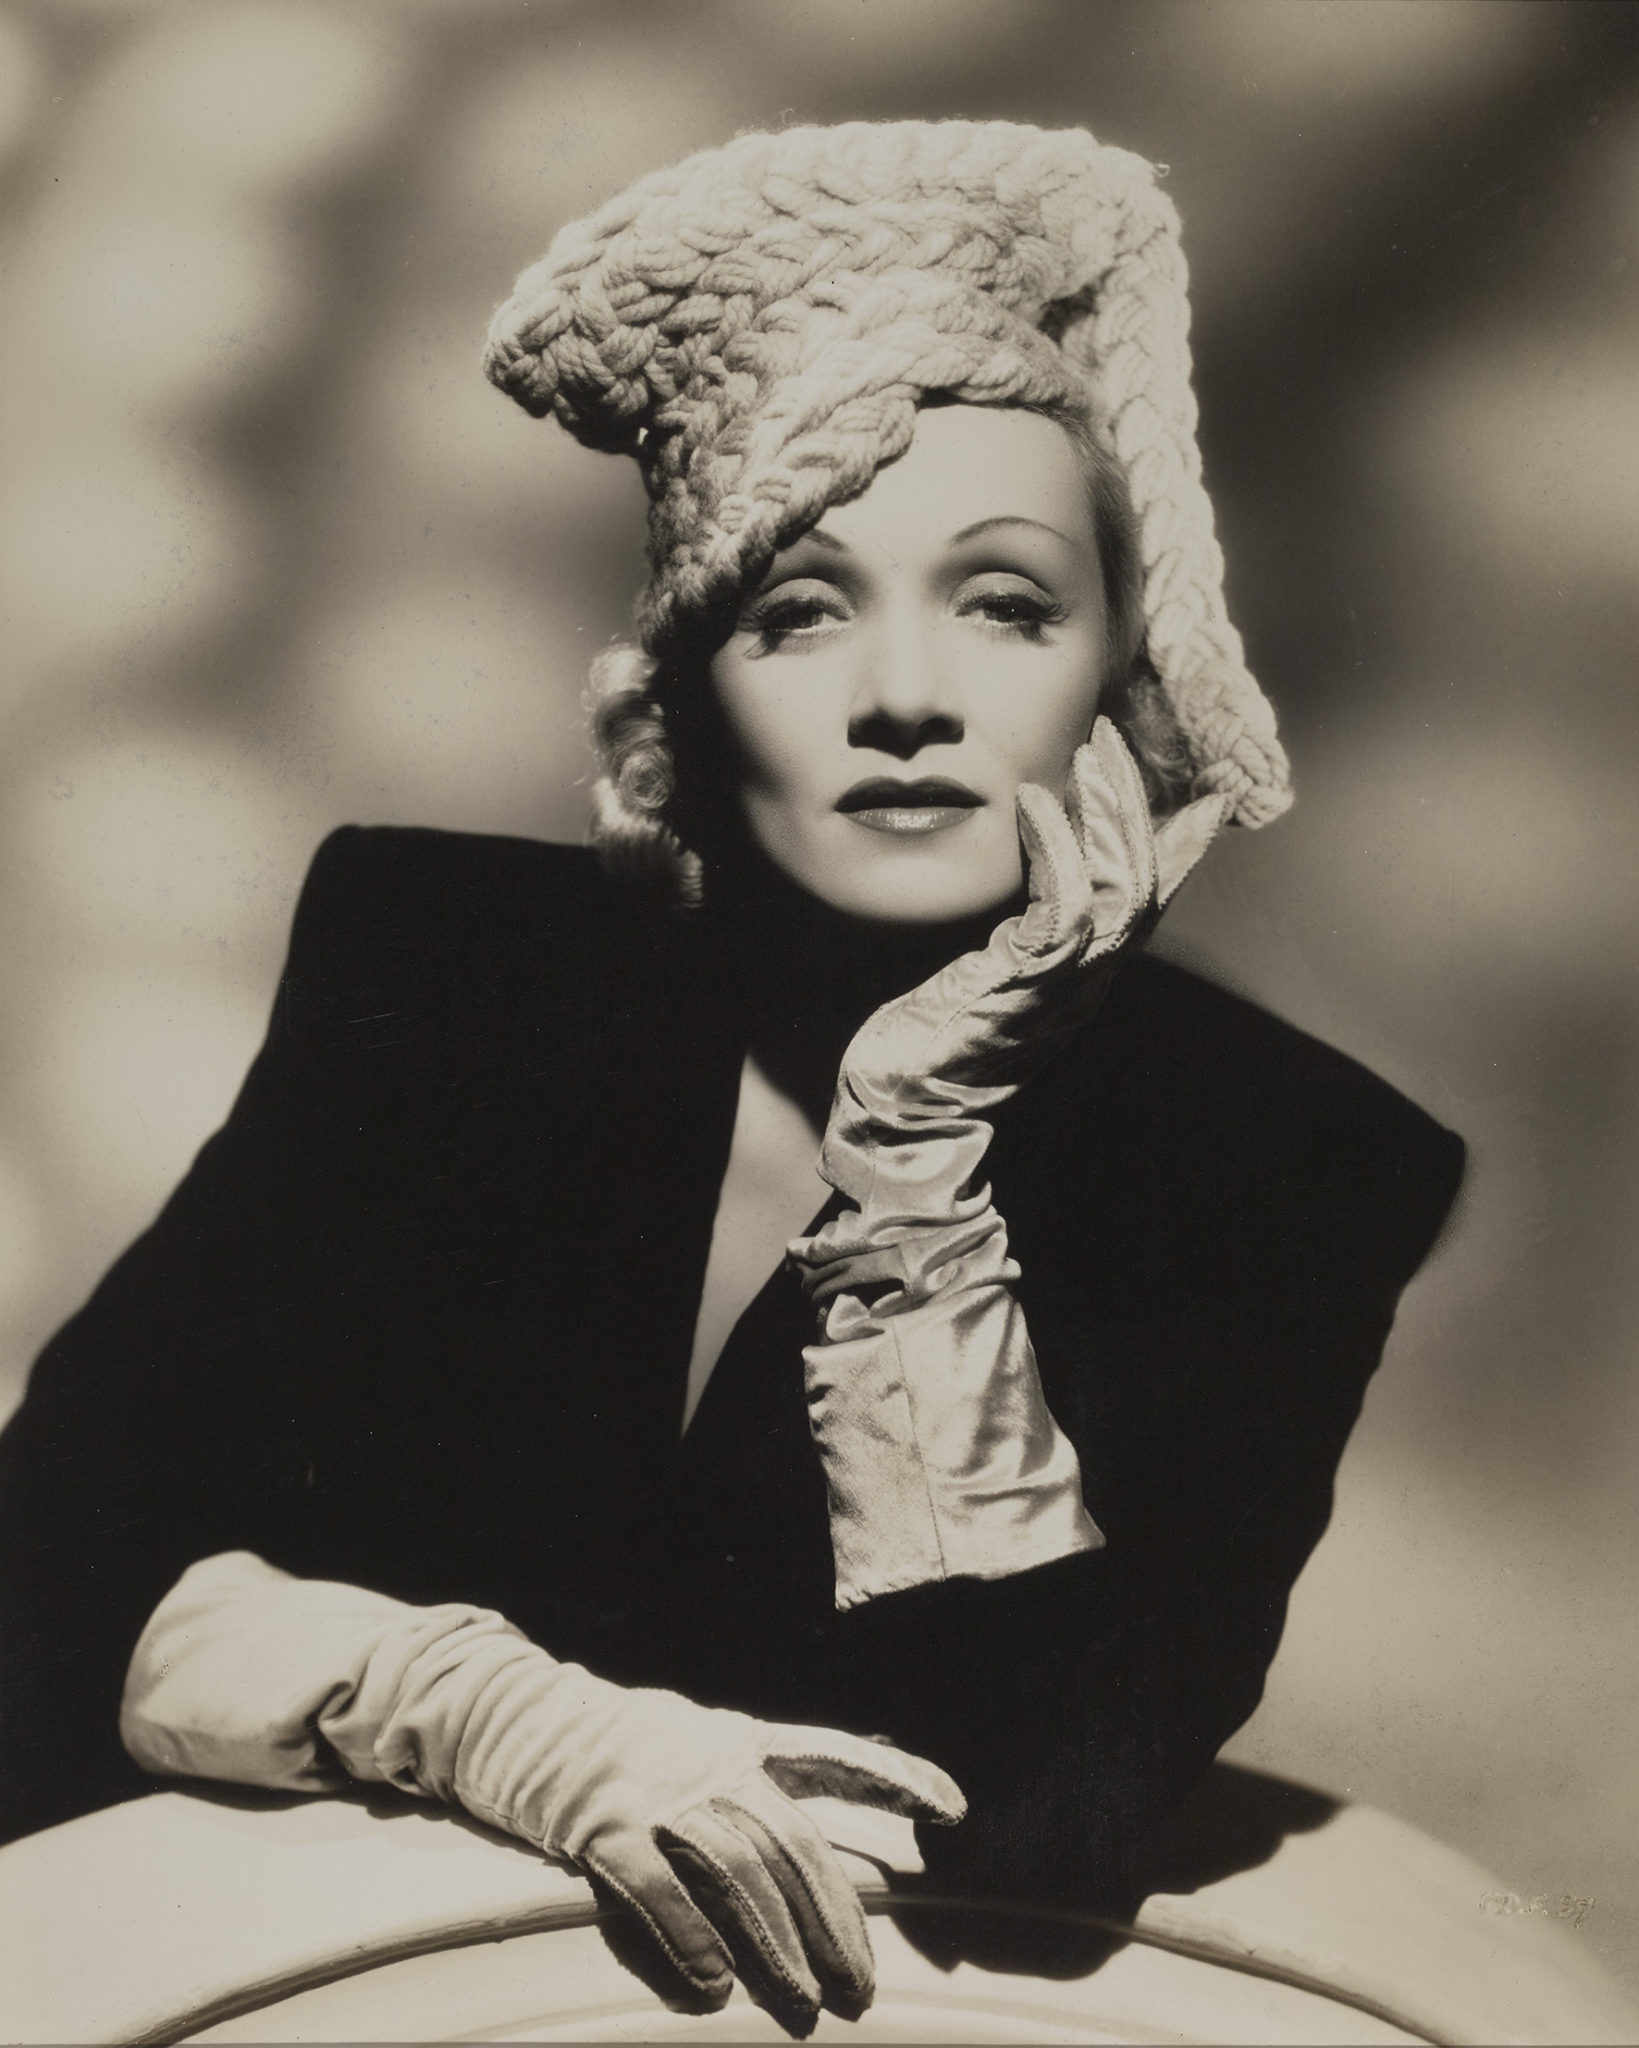 Ray Jones Marlene Dietrich, Pittsburgh, 1942 © Everett Collection/Bridgeman Images